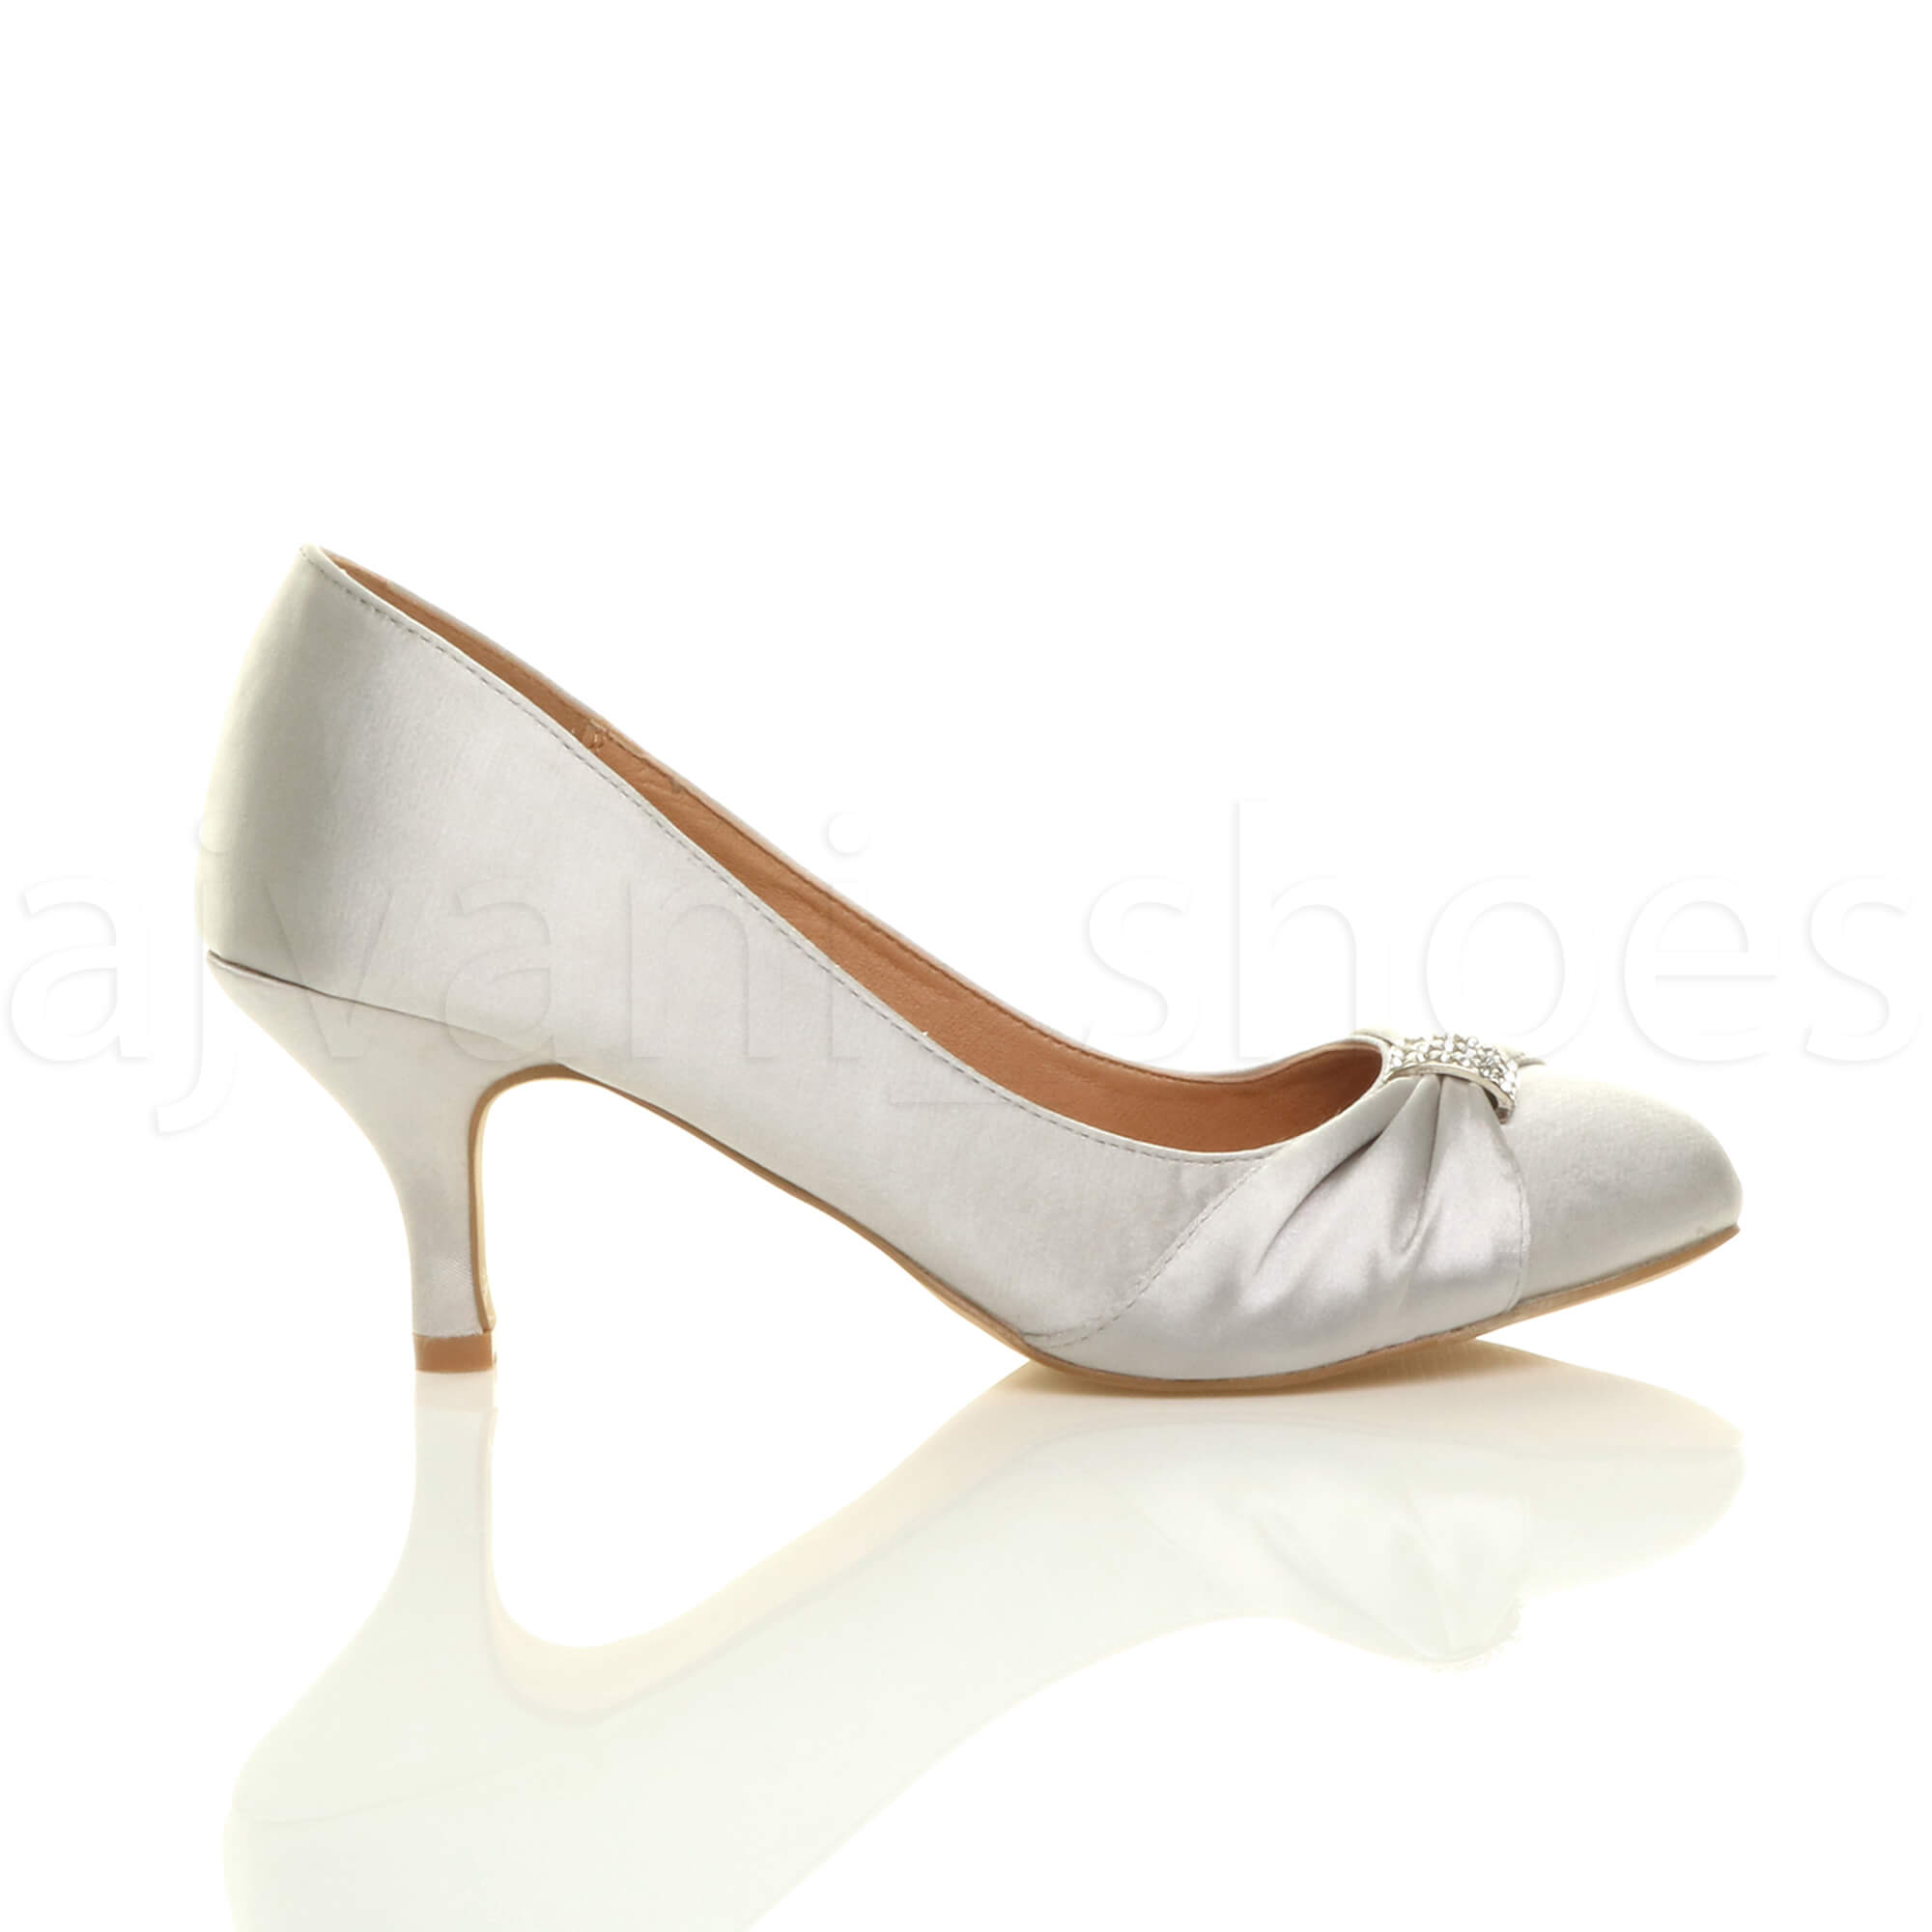 WOMENS-LADIES-MID-HEEL-RUCHED-DIAMANTE-WEDDING-PROM-EVENING-COURT-SHOES-SIZE thumbnail 91